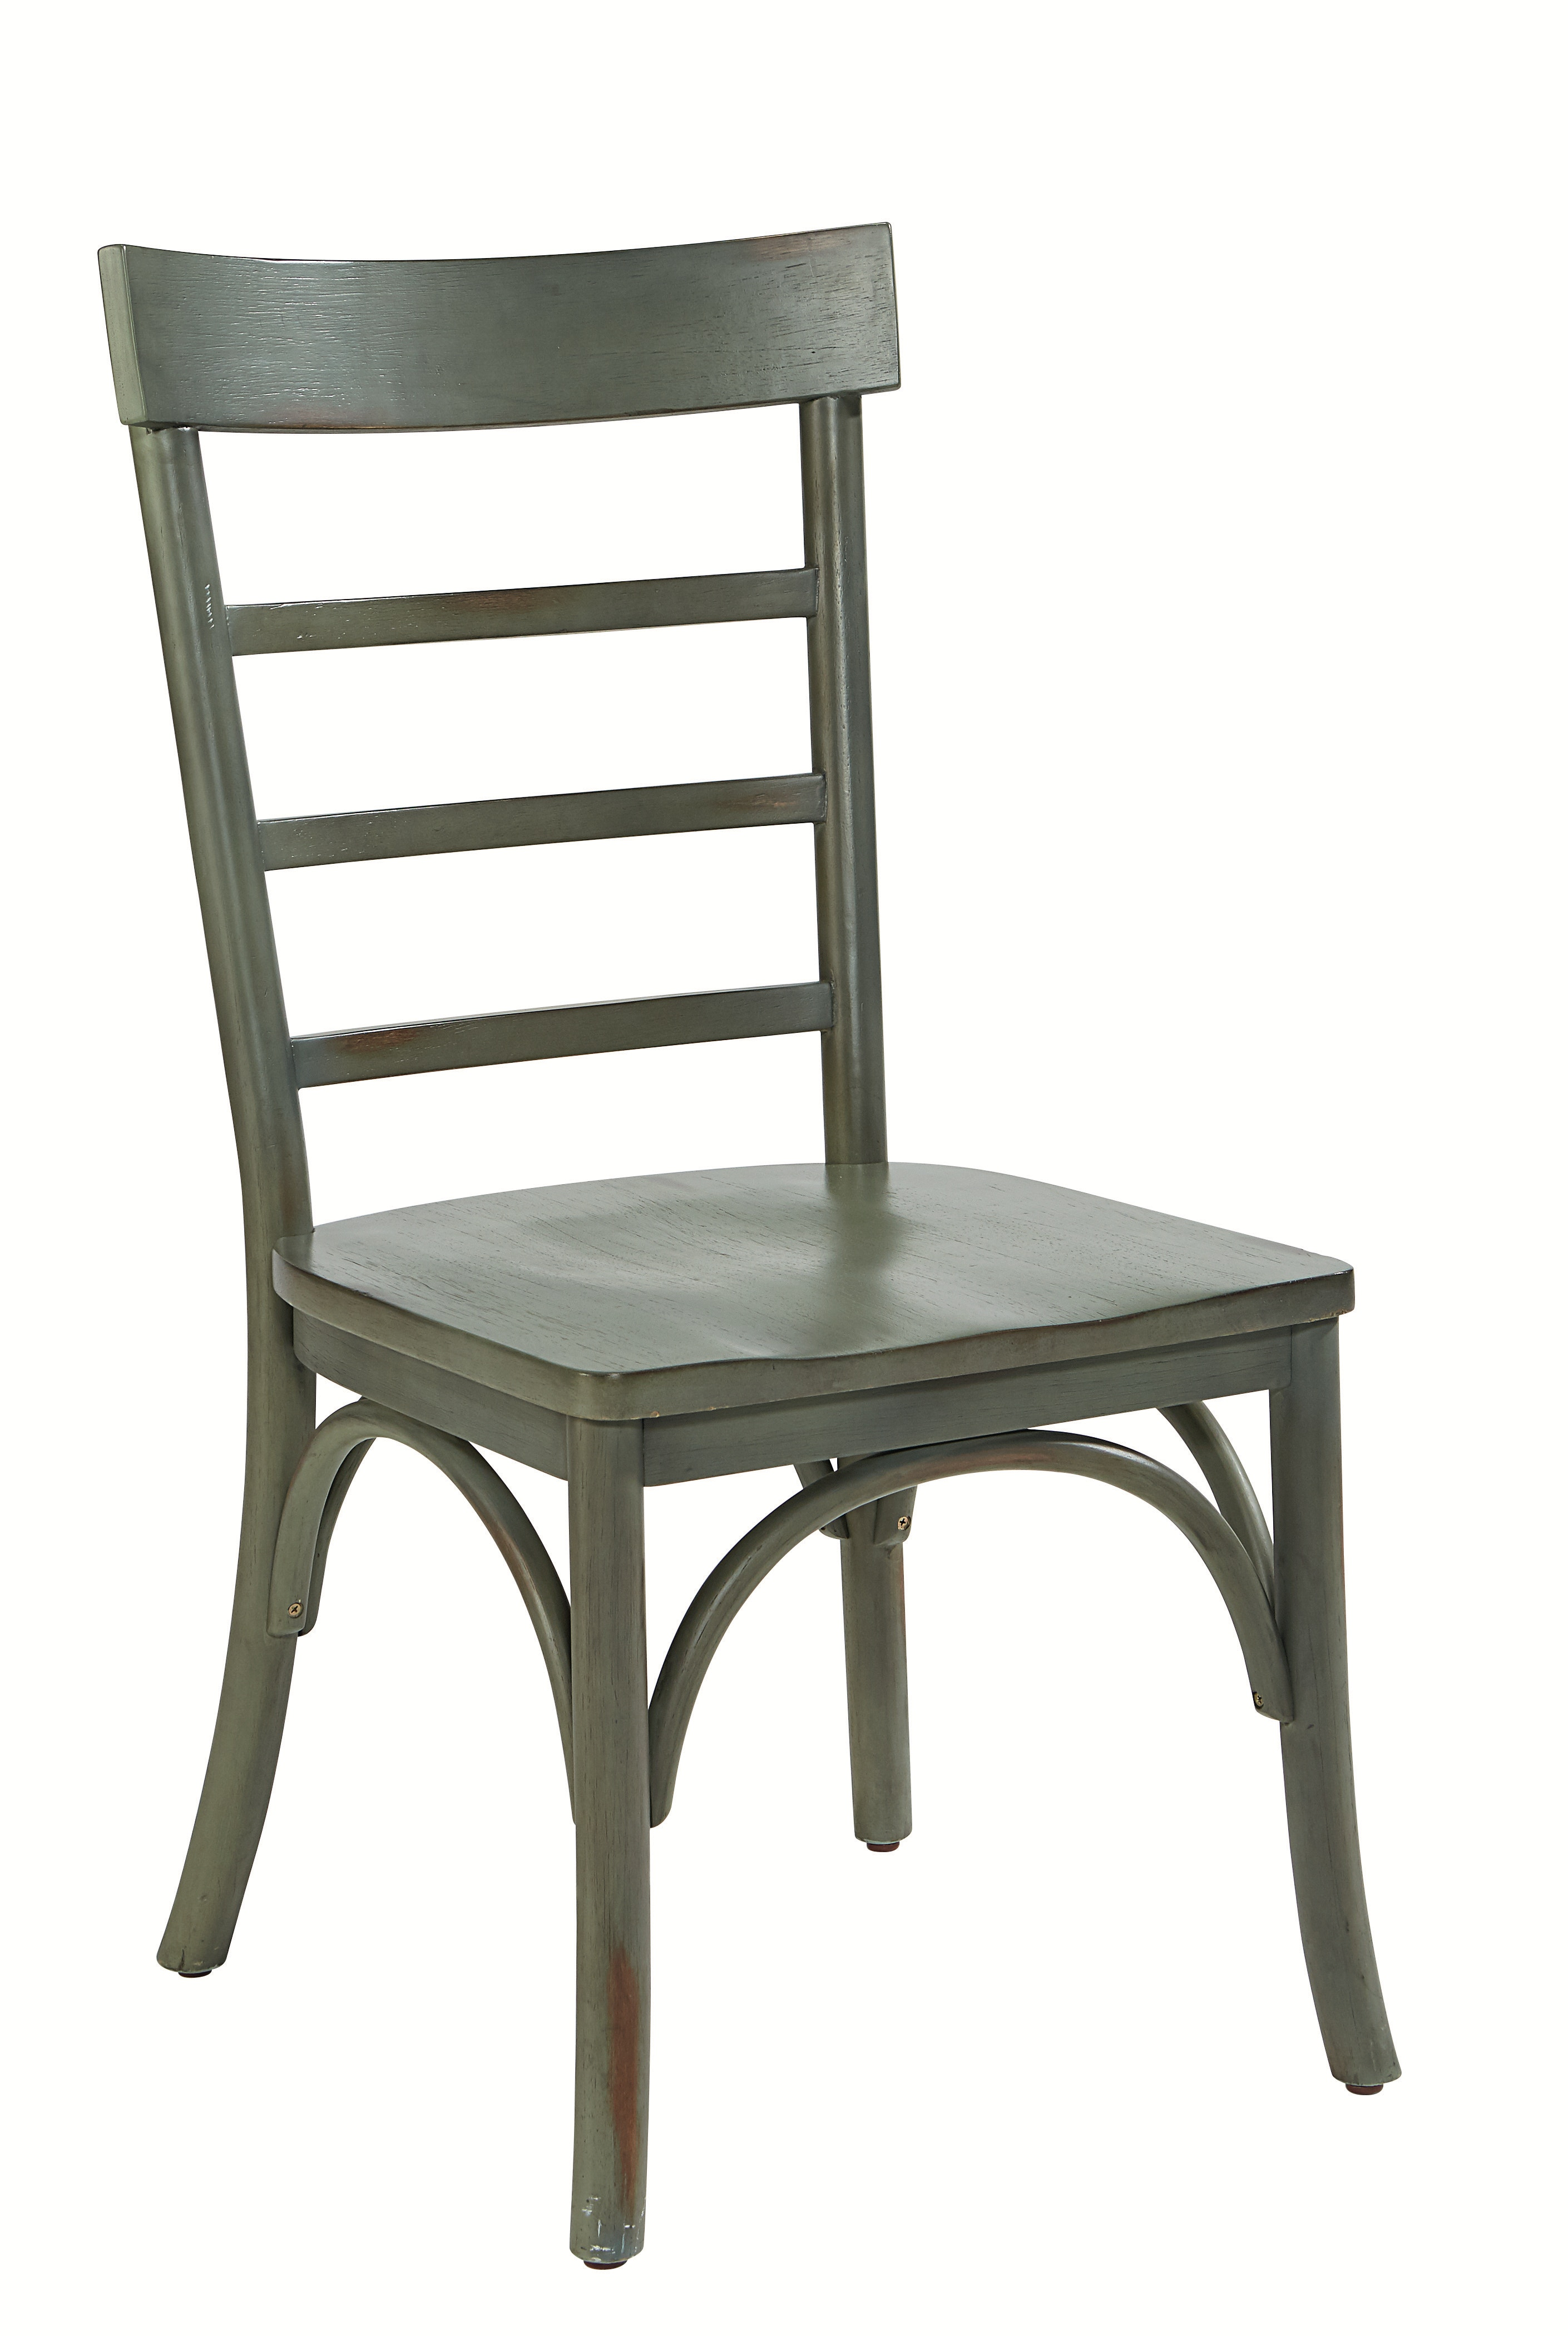 Magnolia Home Top Tier Pedestal Table Setting 6010601S TABLE SETTING 4  CHAIRS U0026 TABLE